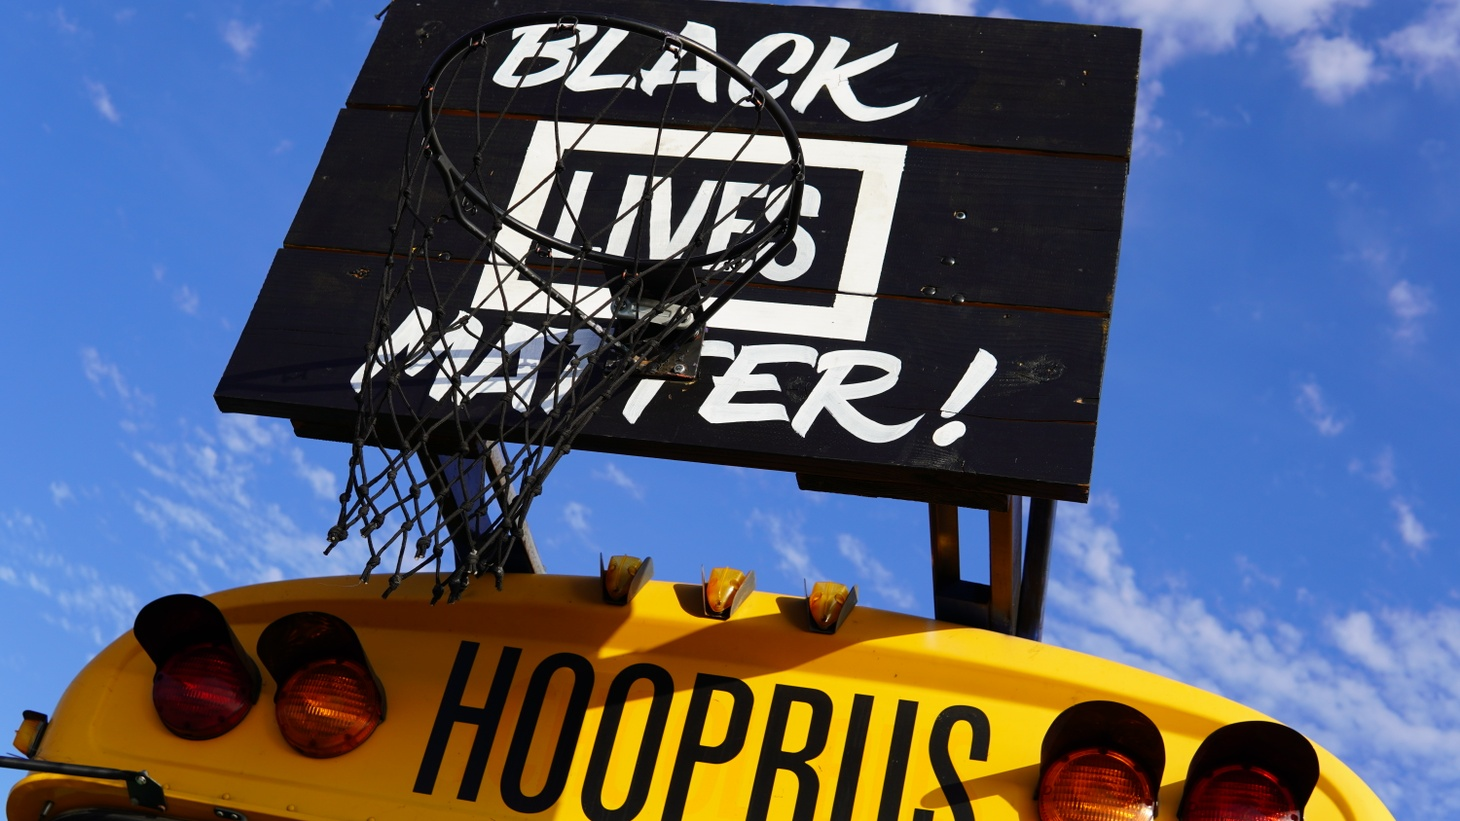 The Hoop Bus aims to amplify the message of the Black Lives Matter movement.